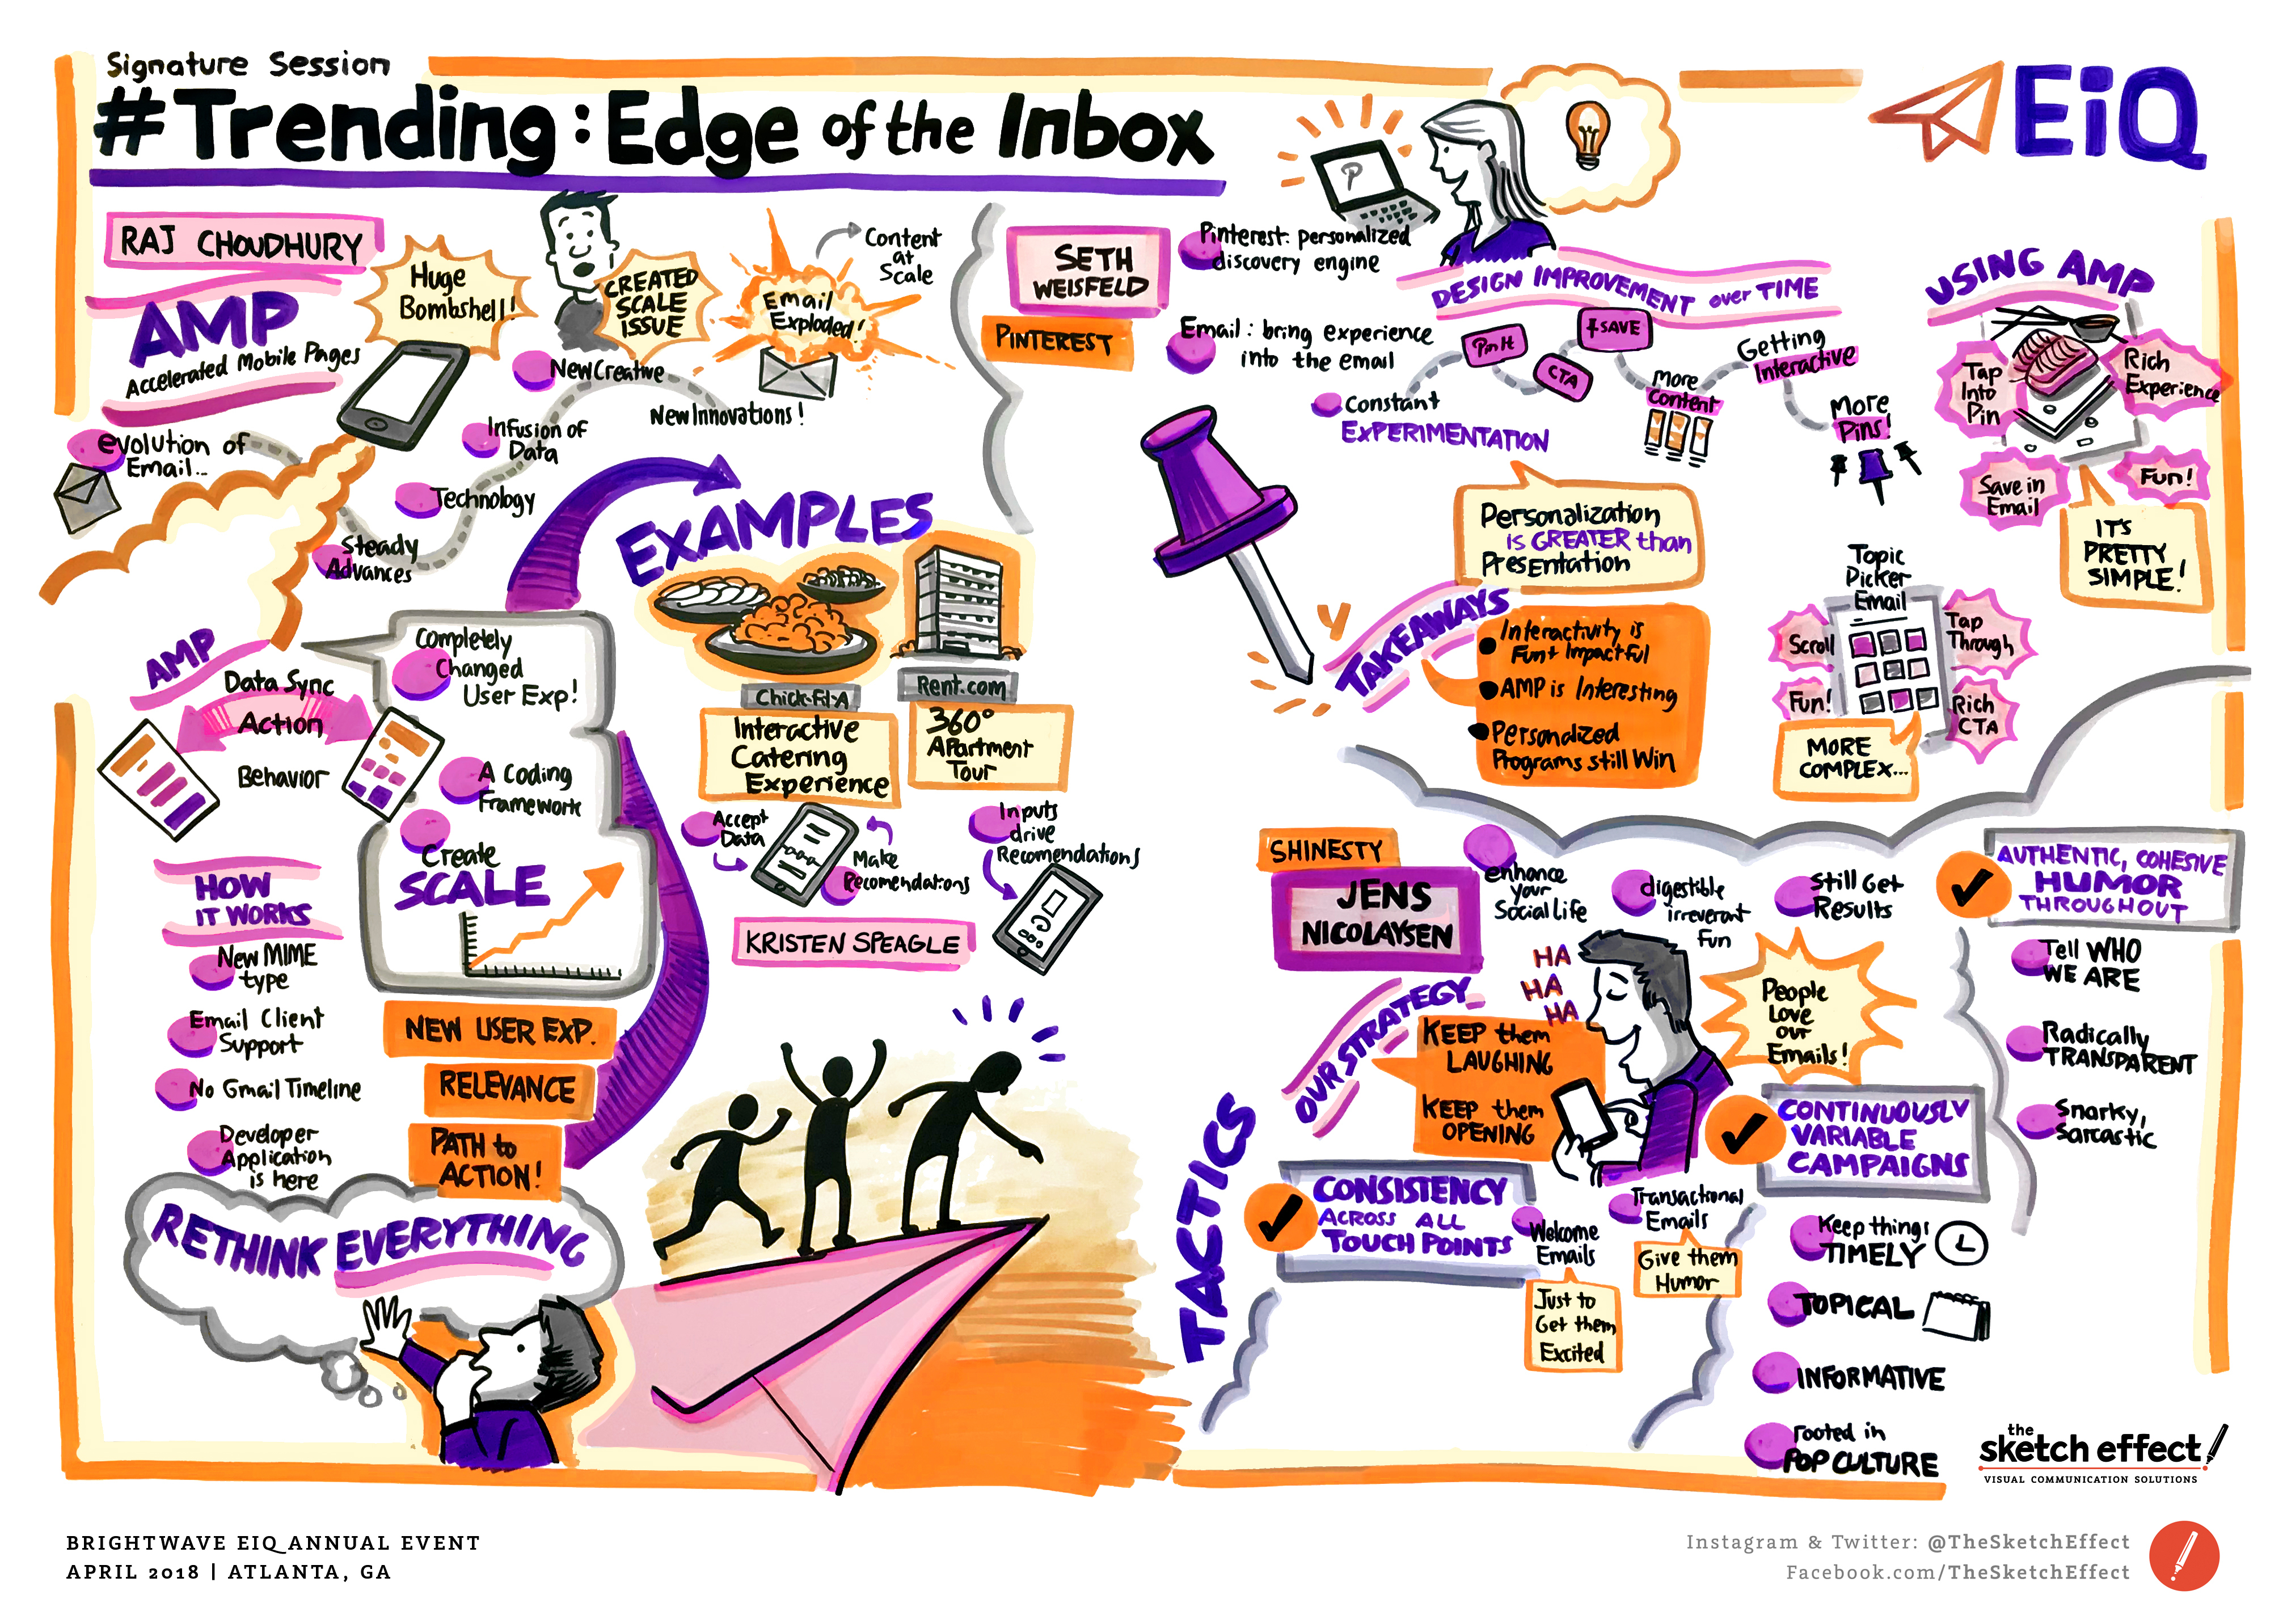 #Trending: Edge of the Inbox